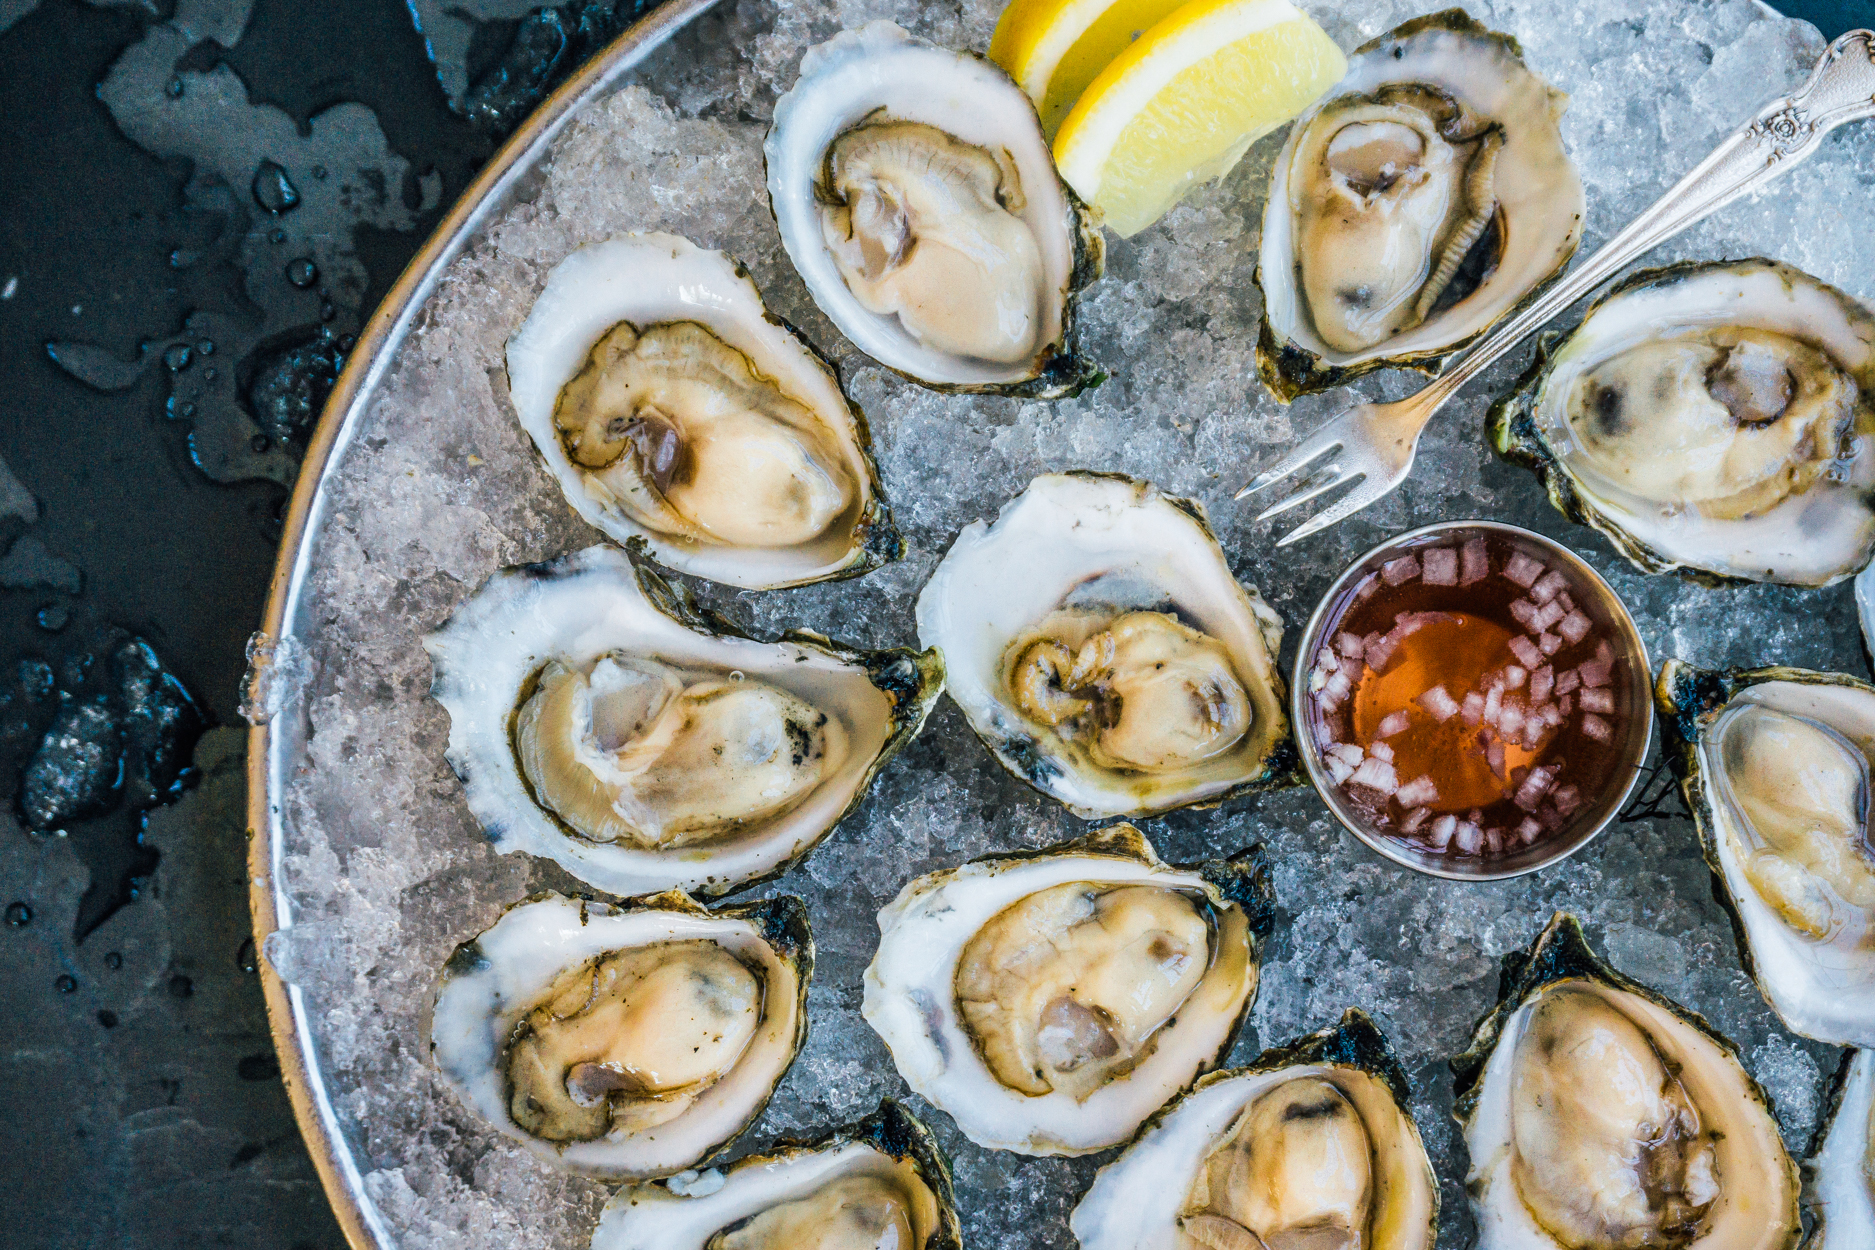 Restaurants and Farms Offering Direct-to-Consumer Products | Island Creek Oysters